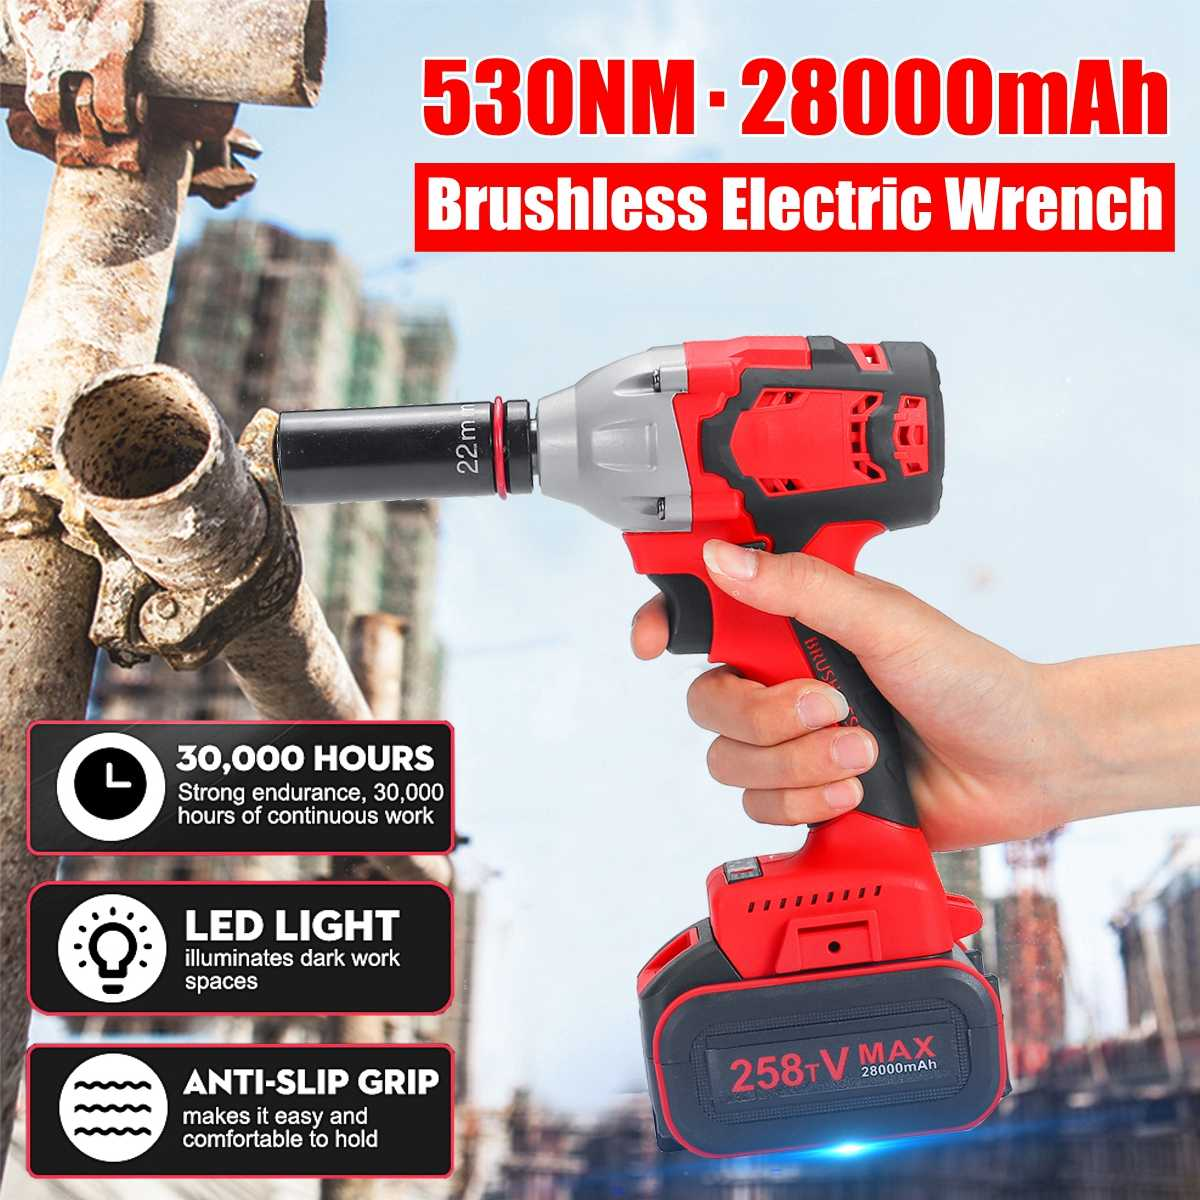 "21V 8AH Brushless Cordless Impact Electric Wrench 530Nm 28000mah Torque Household Car/SUV Wheel 1/2"" Socket Wrench Power Tool"